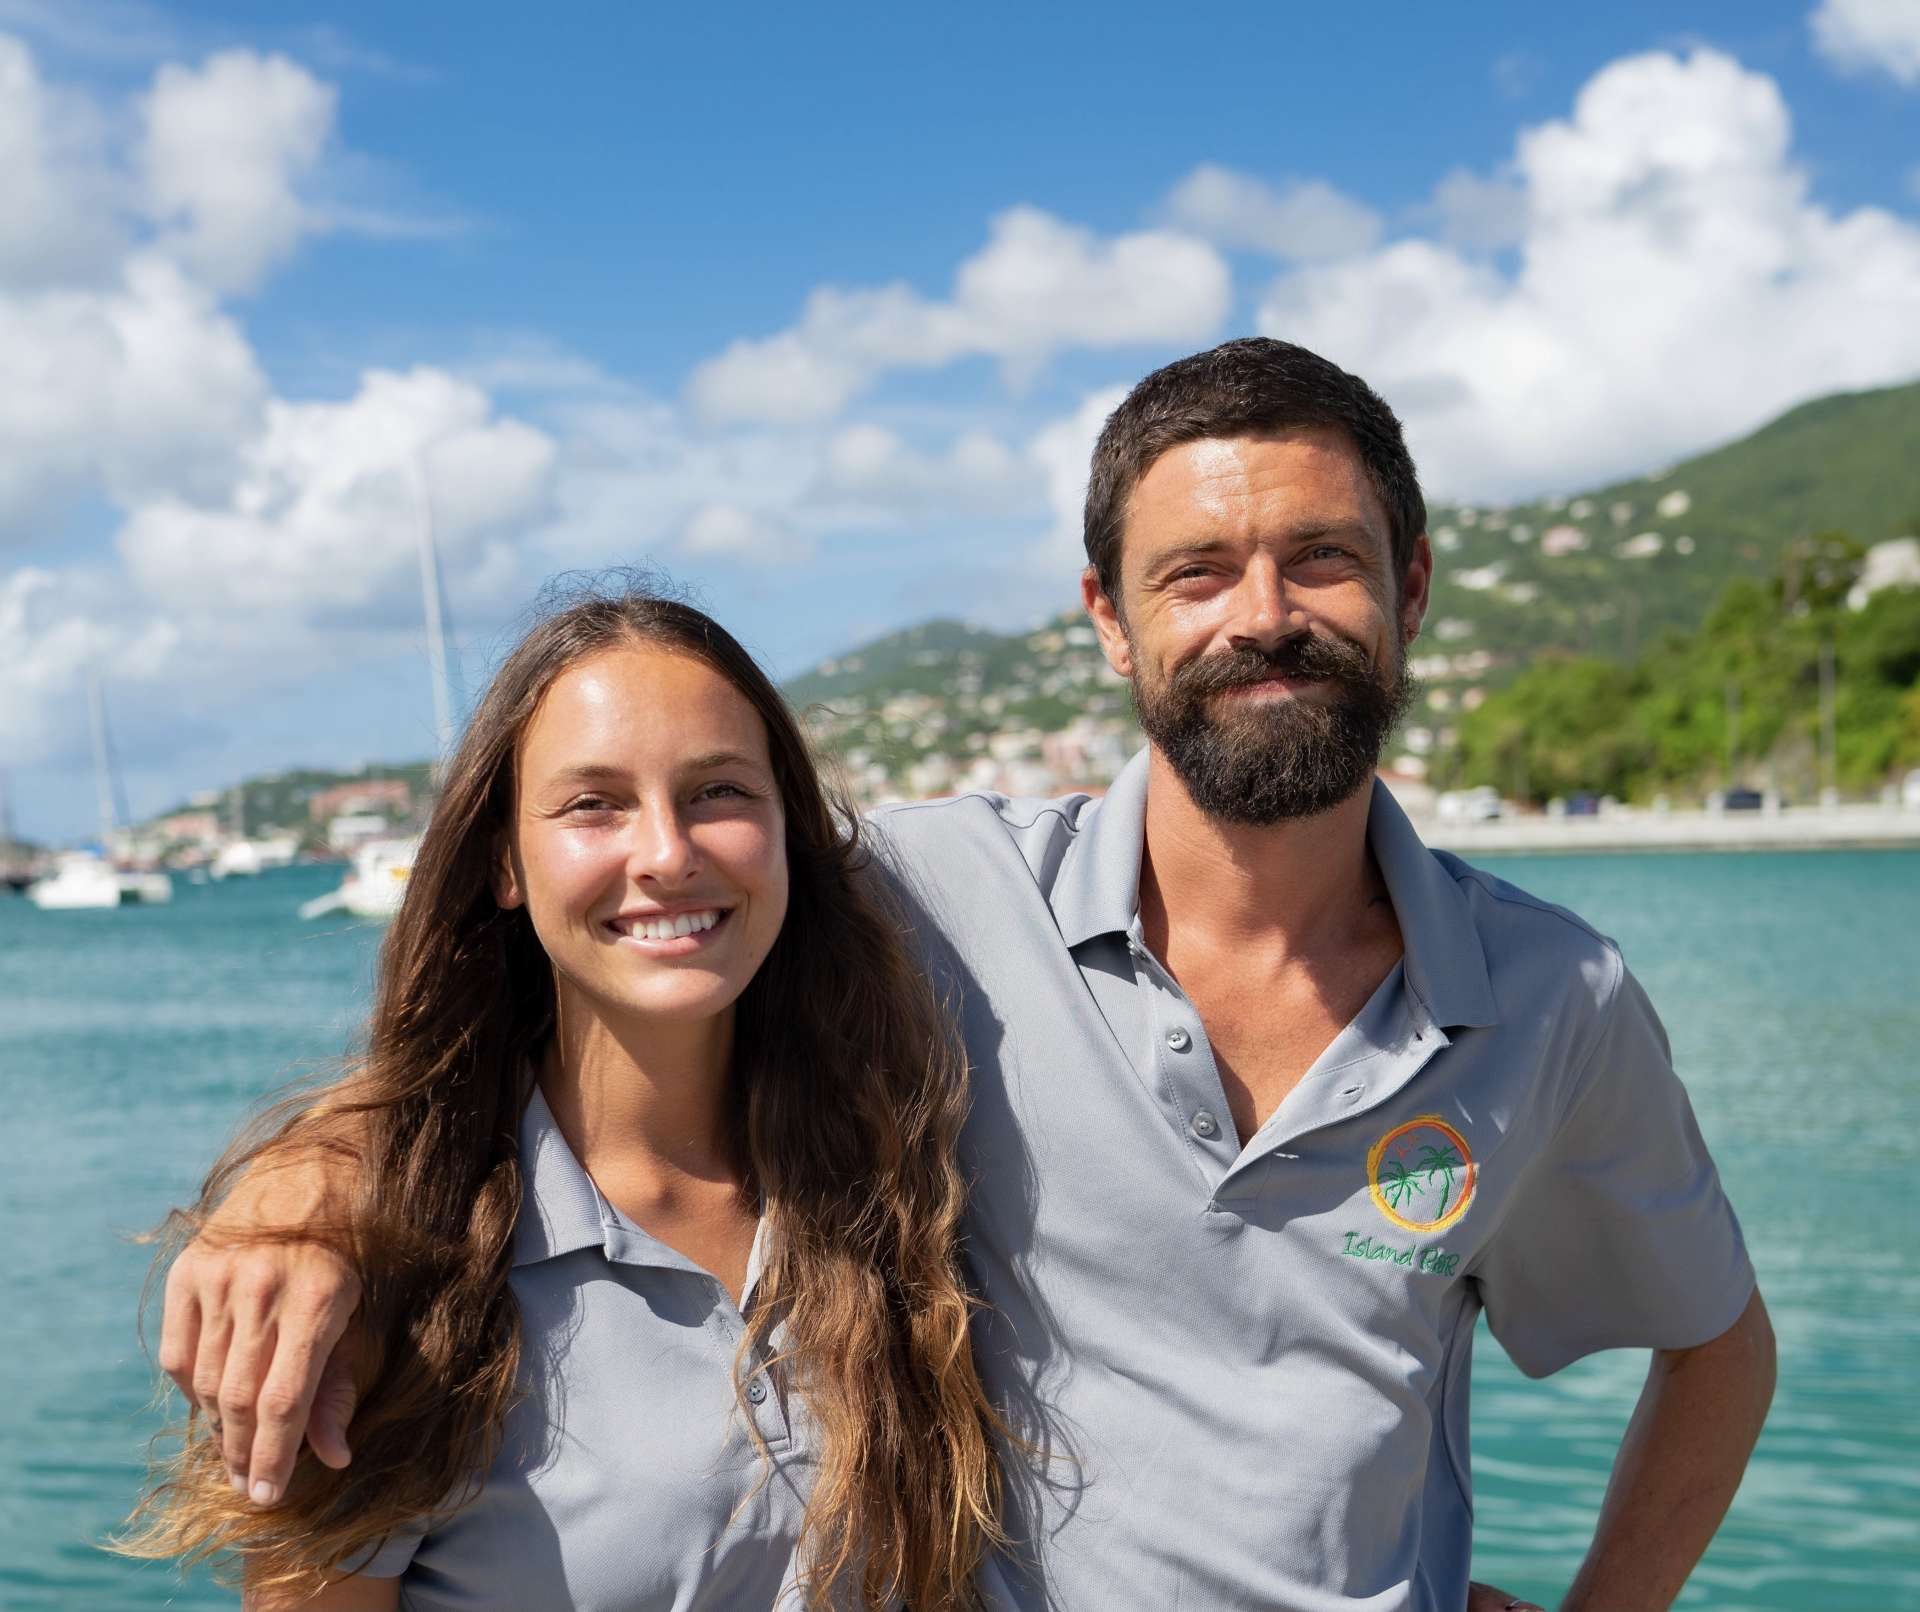 Thomson and Shayna first crossed paths on the ocean while enjoying a cruise on a classic wooden schooner with mutual friends off the coast of Tybee Island,GA. Shortly after they were inseparable and started a life of adventure,sharing a deep passion for